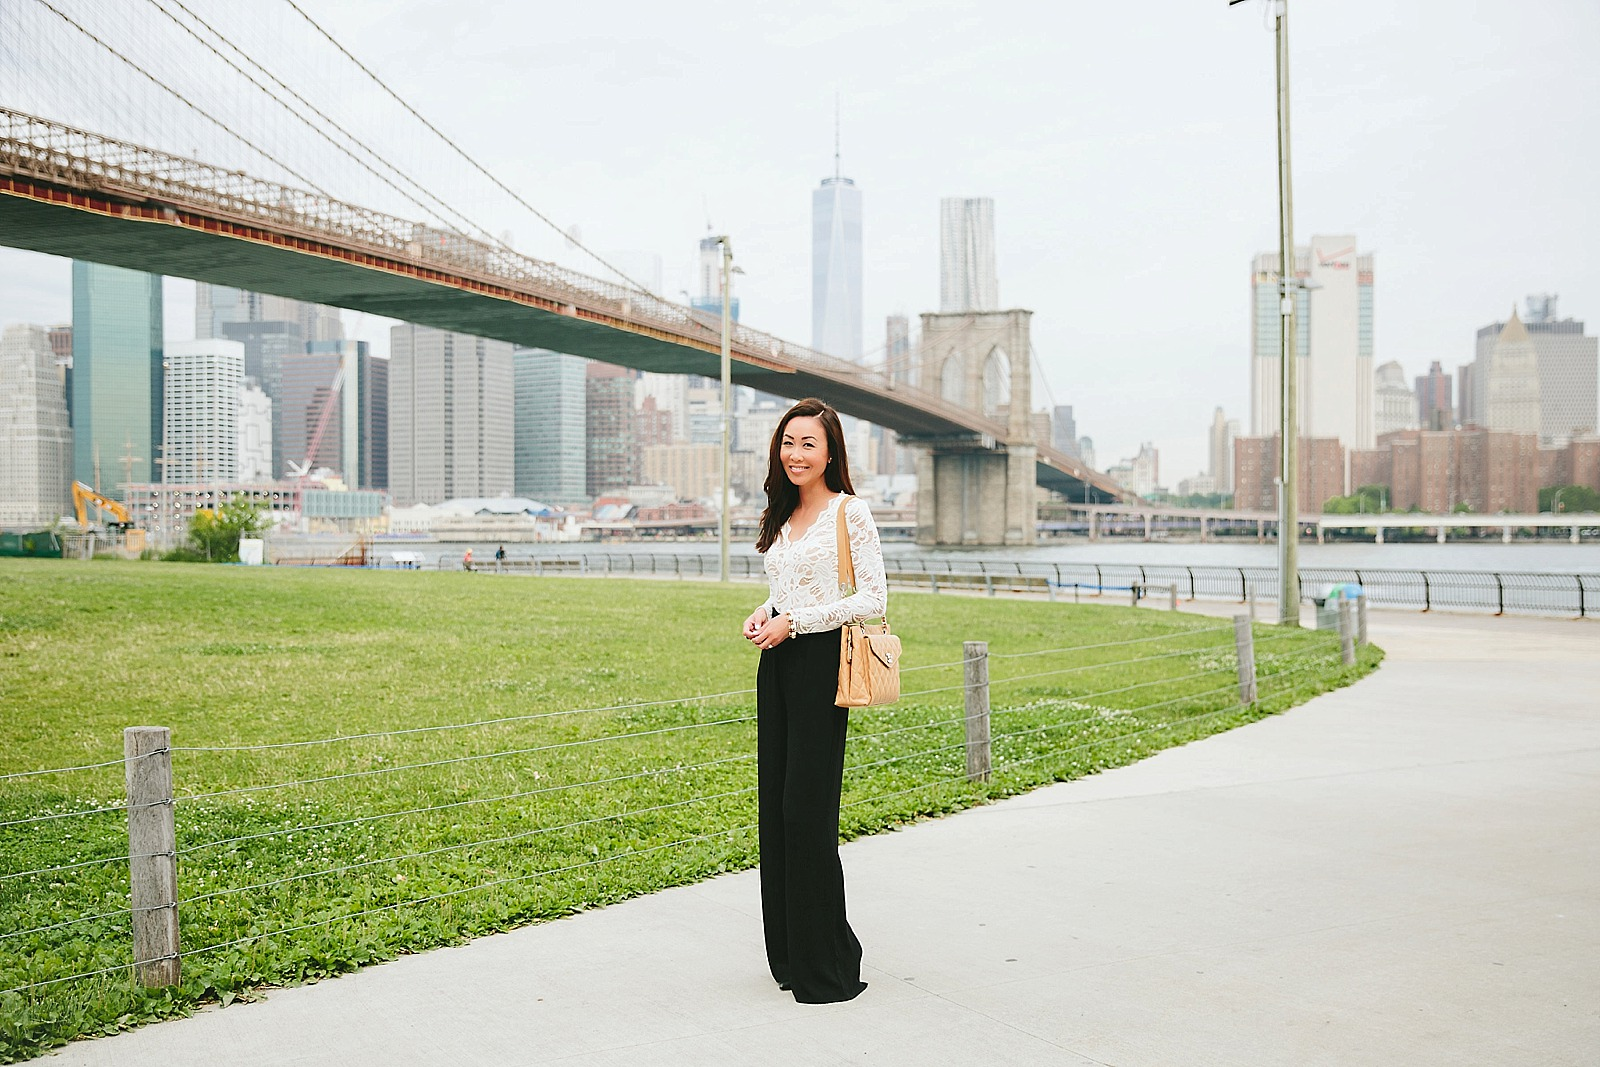 lace bodysuit black high waisted pants brooklyn bridge new york / diana elizabeth / lifestyle blogger www.dianaelizabethblog.com